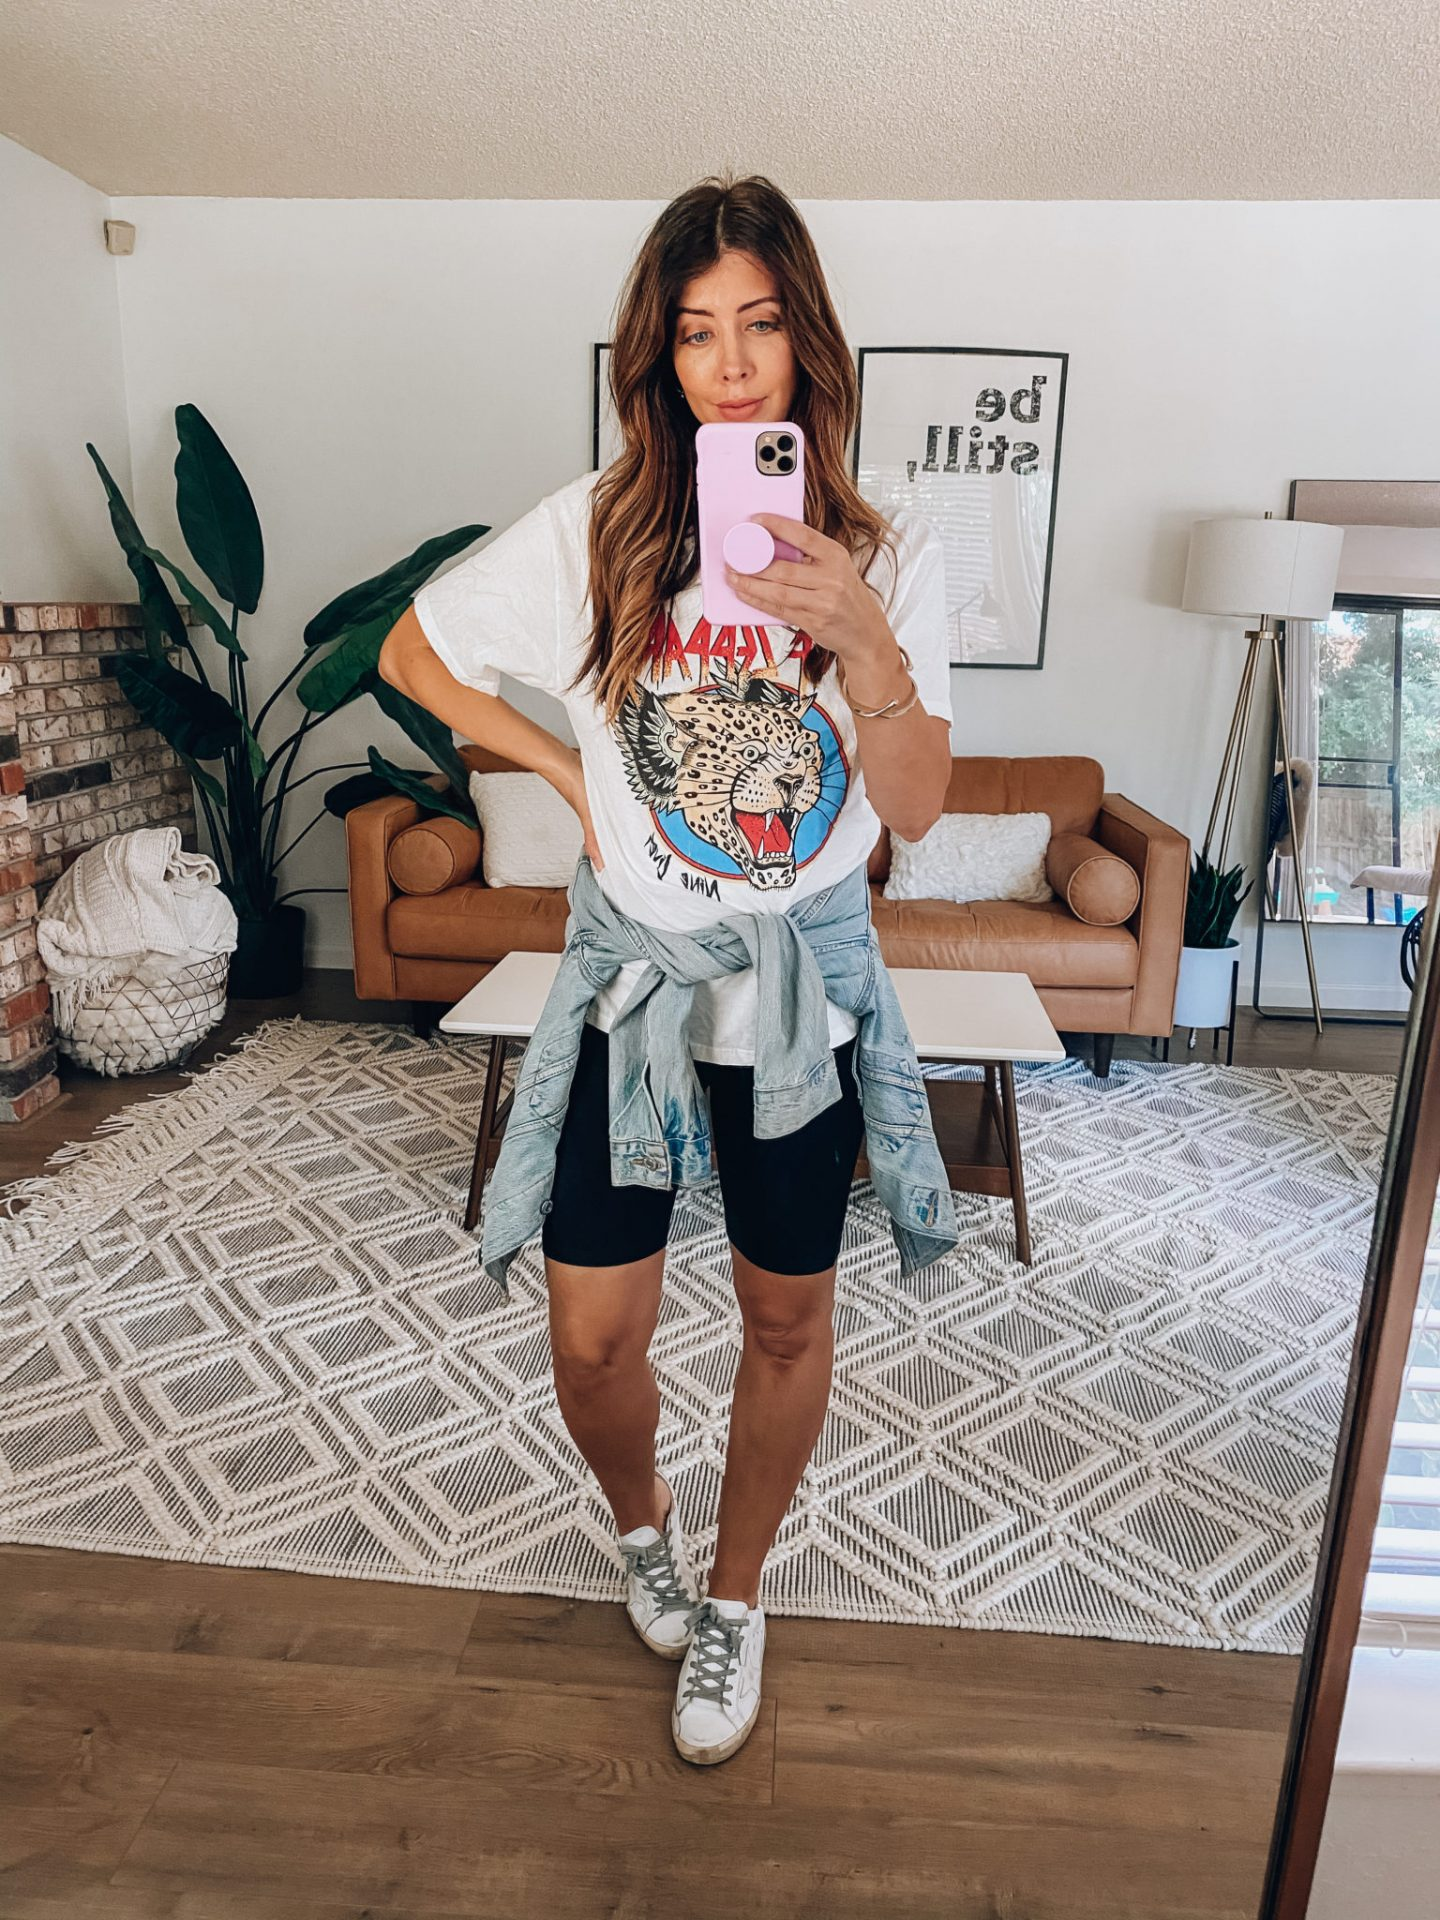 white sneakers with bike shorts and band tee